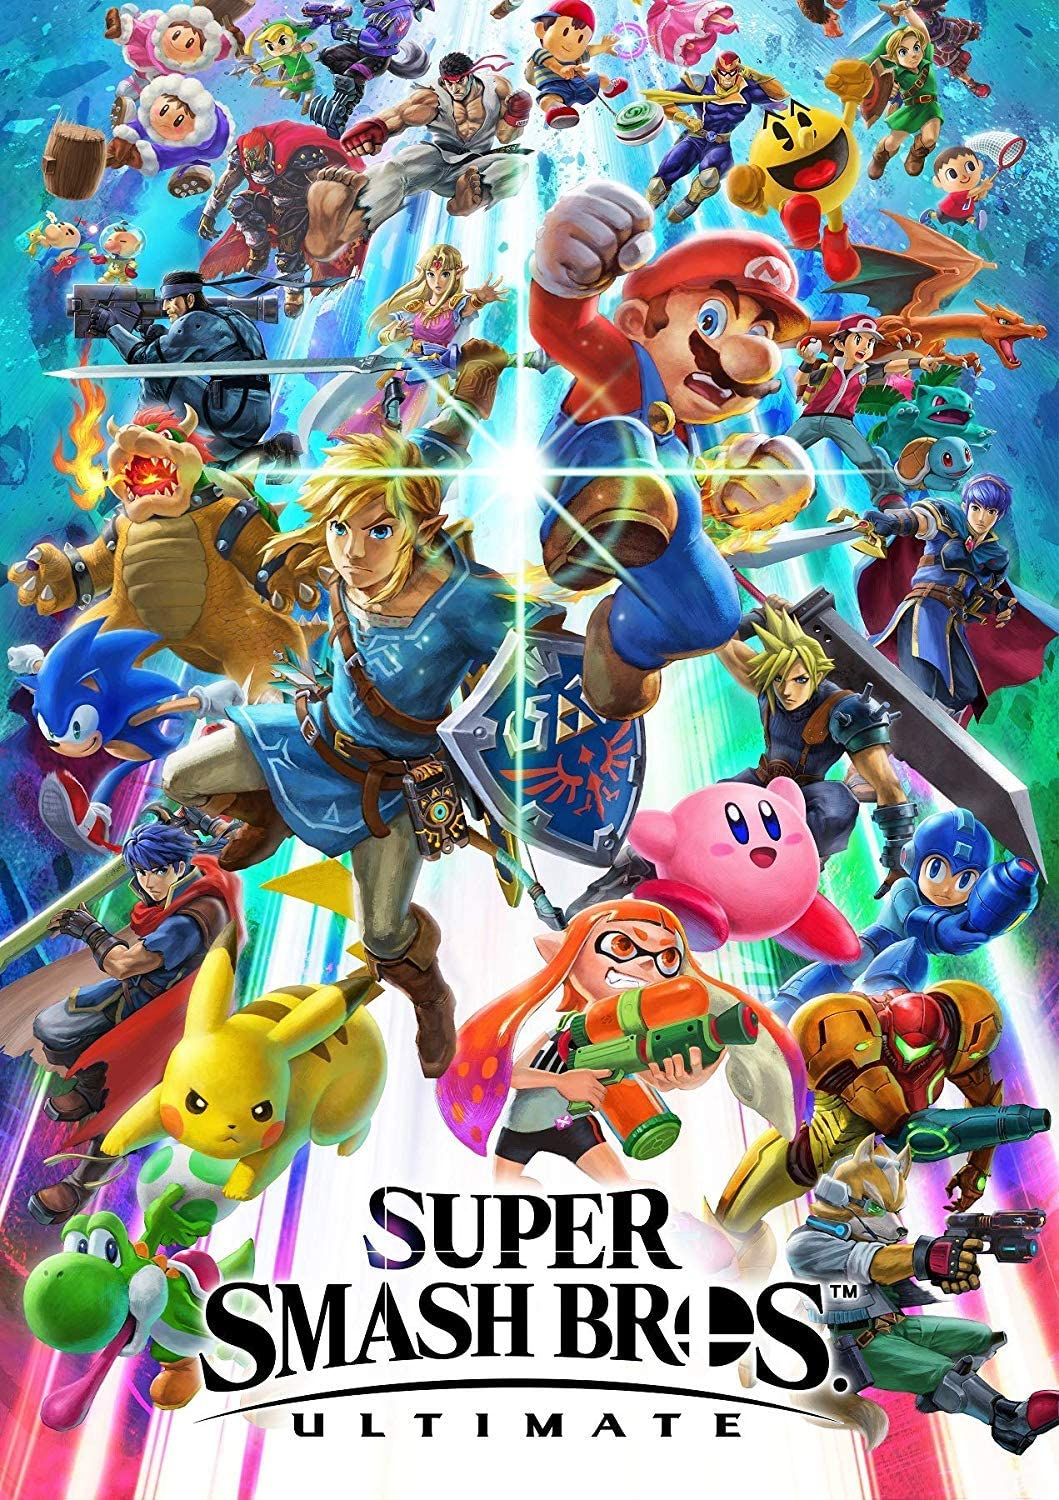 Super Smash Bros. Ultimate Poster: Amazon.es: Hogar